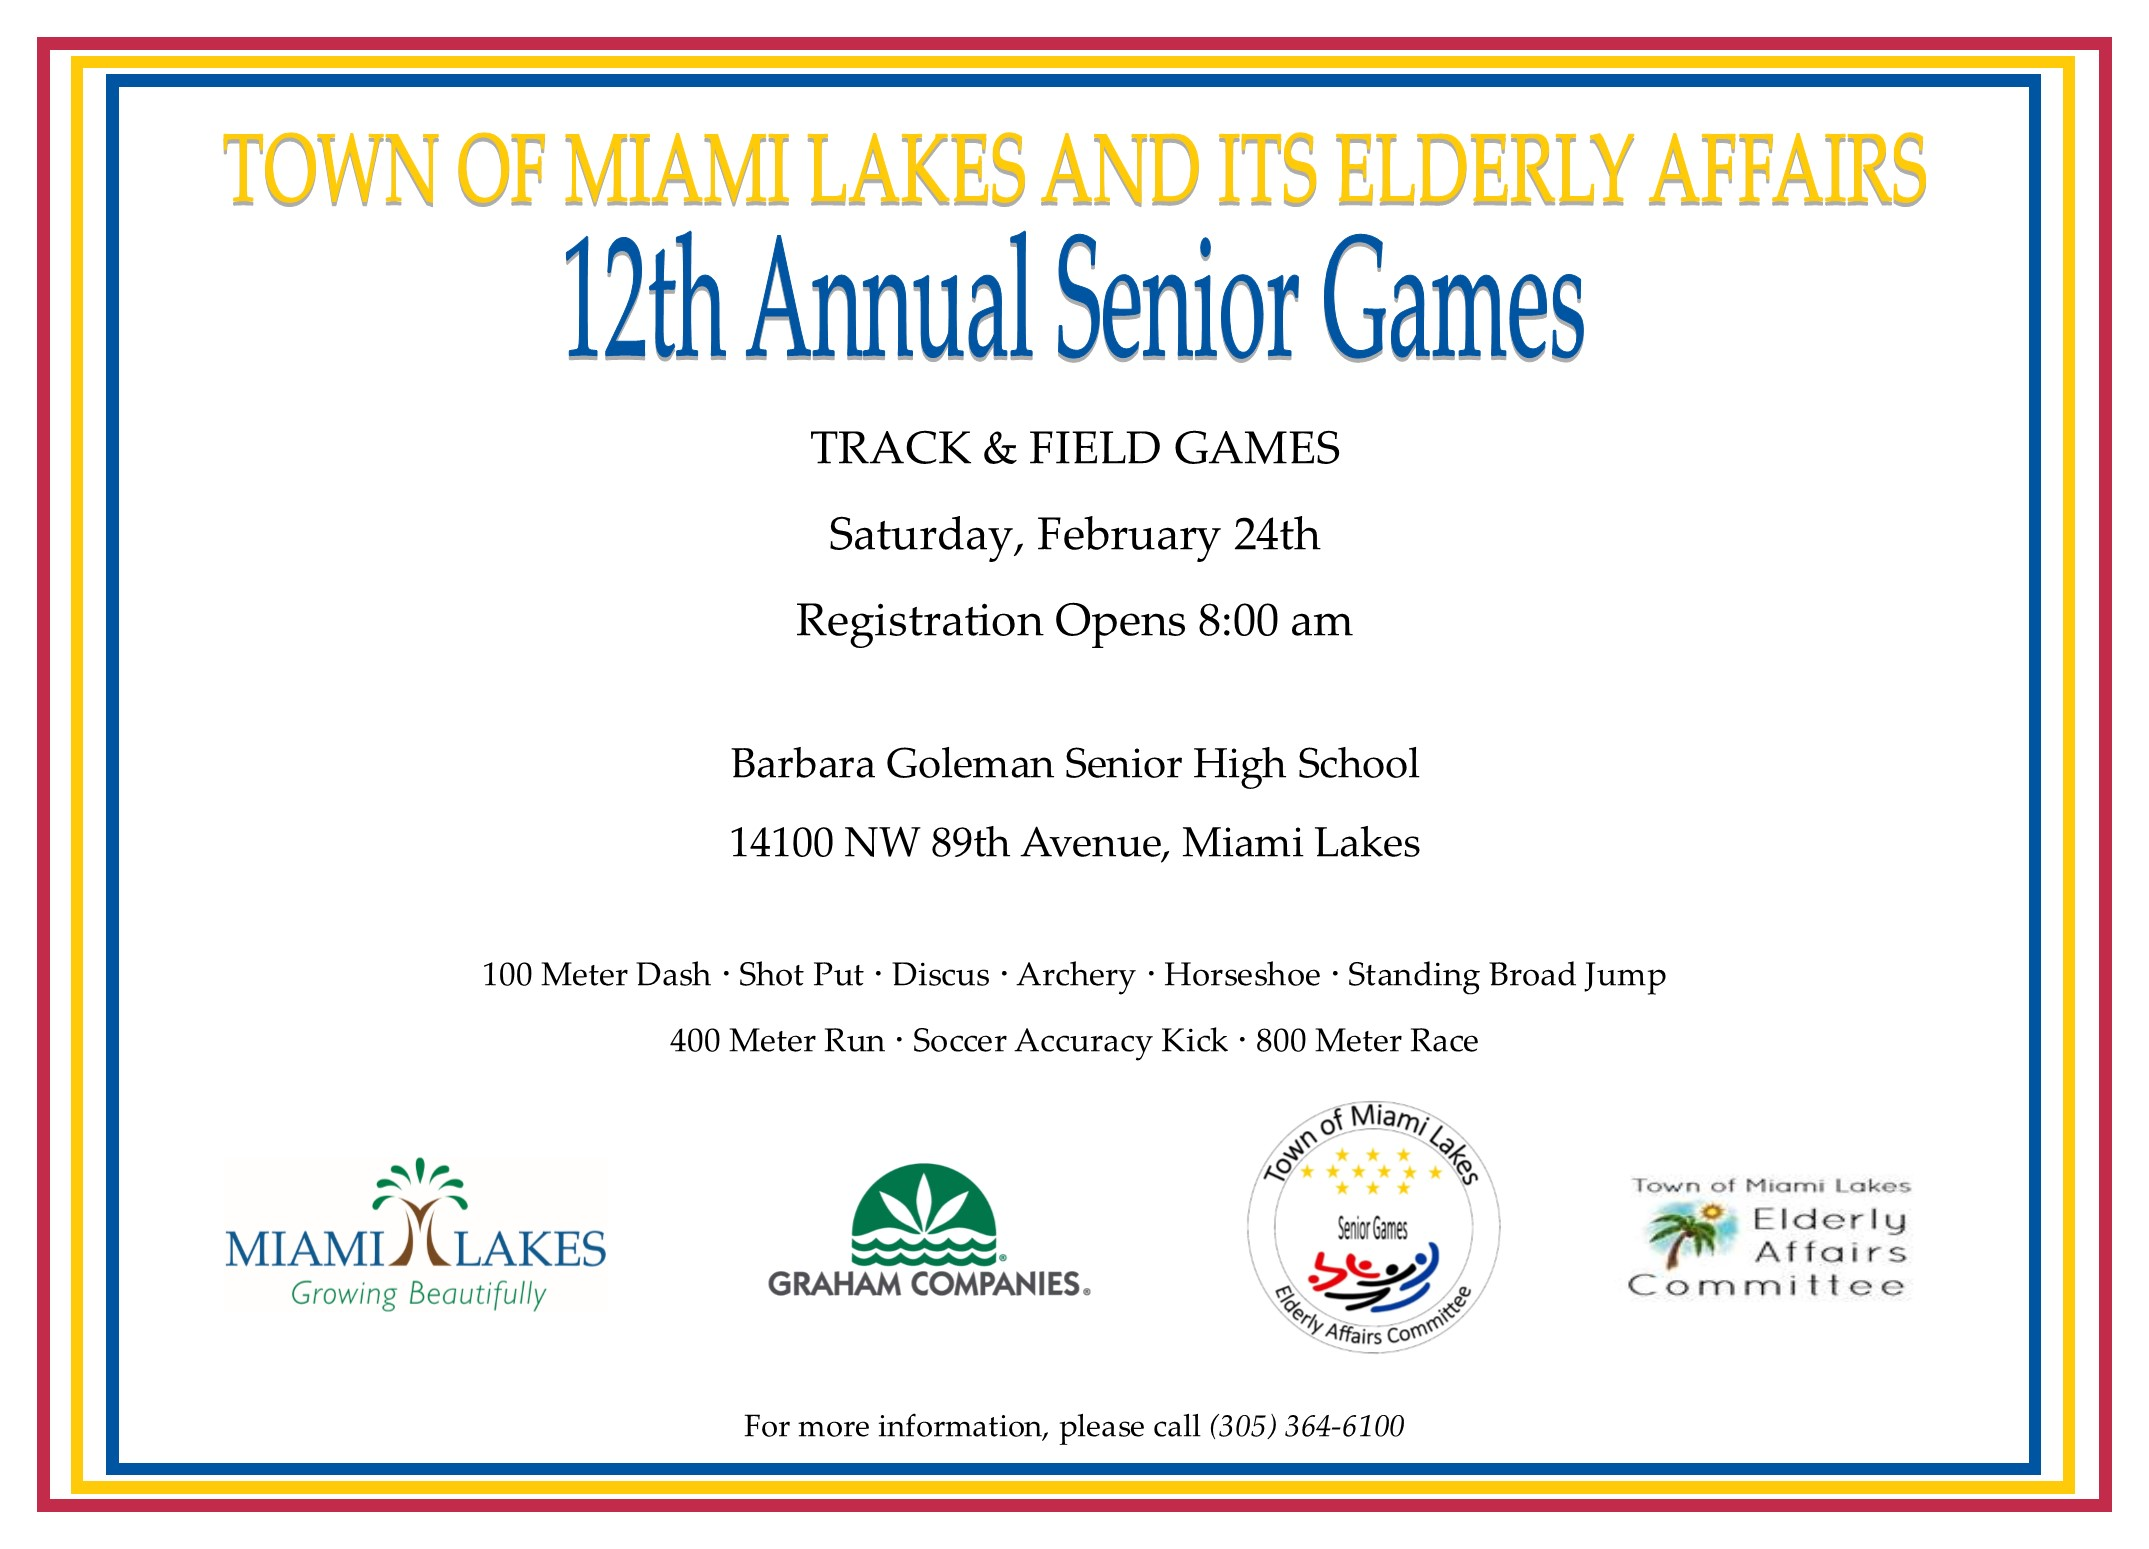 Town of Miami Lakes - Growing Beautifully - 12th Annual Senior Games